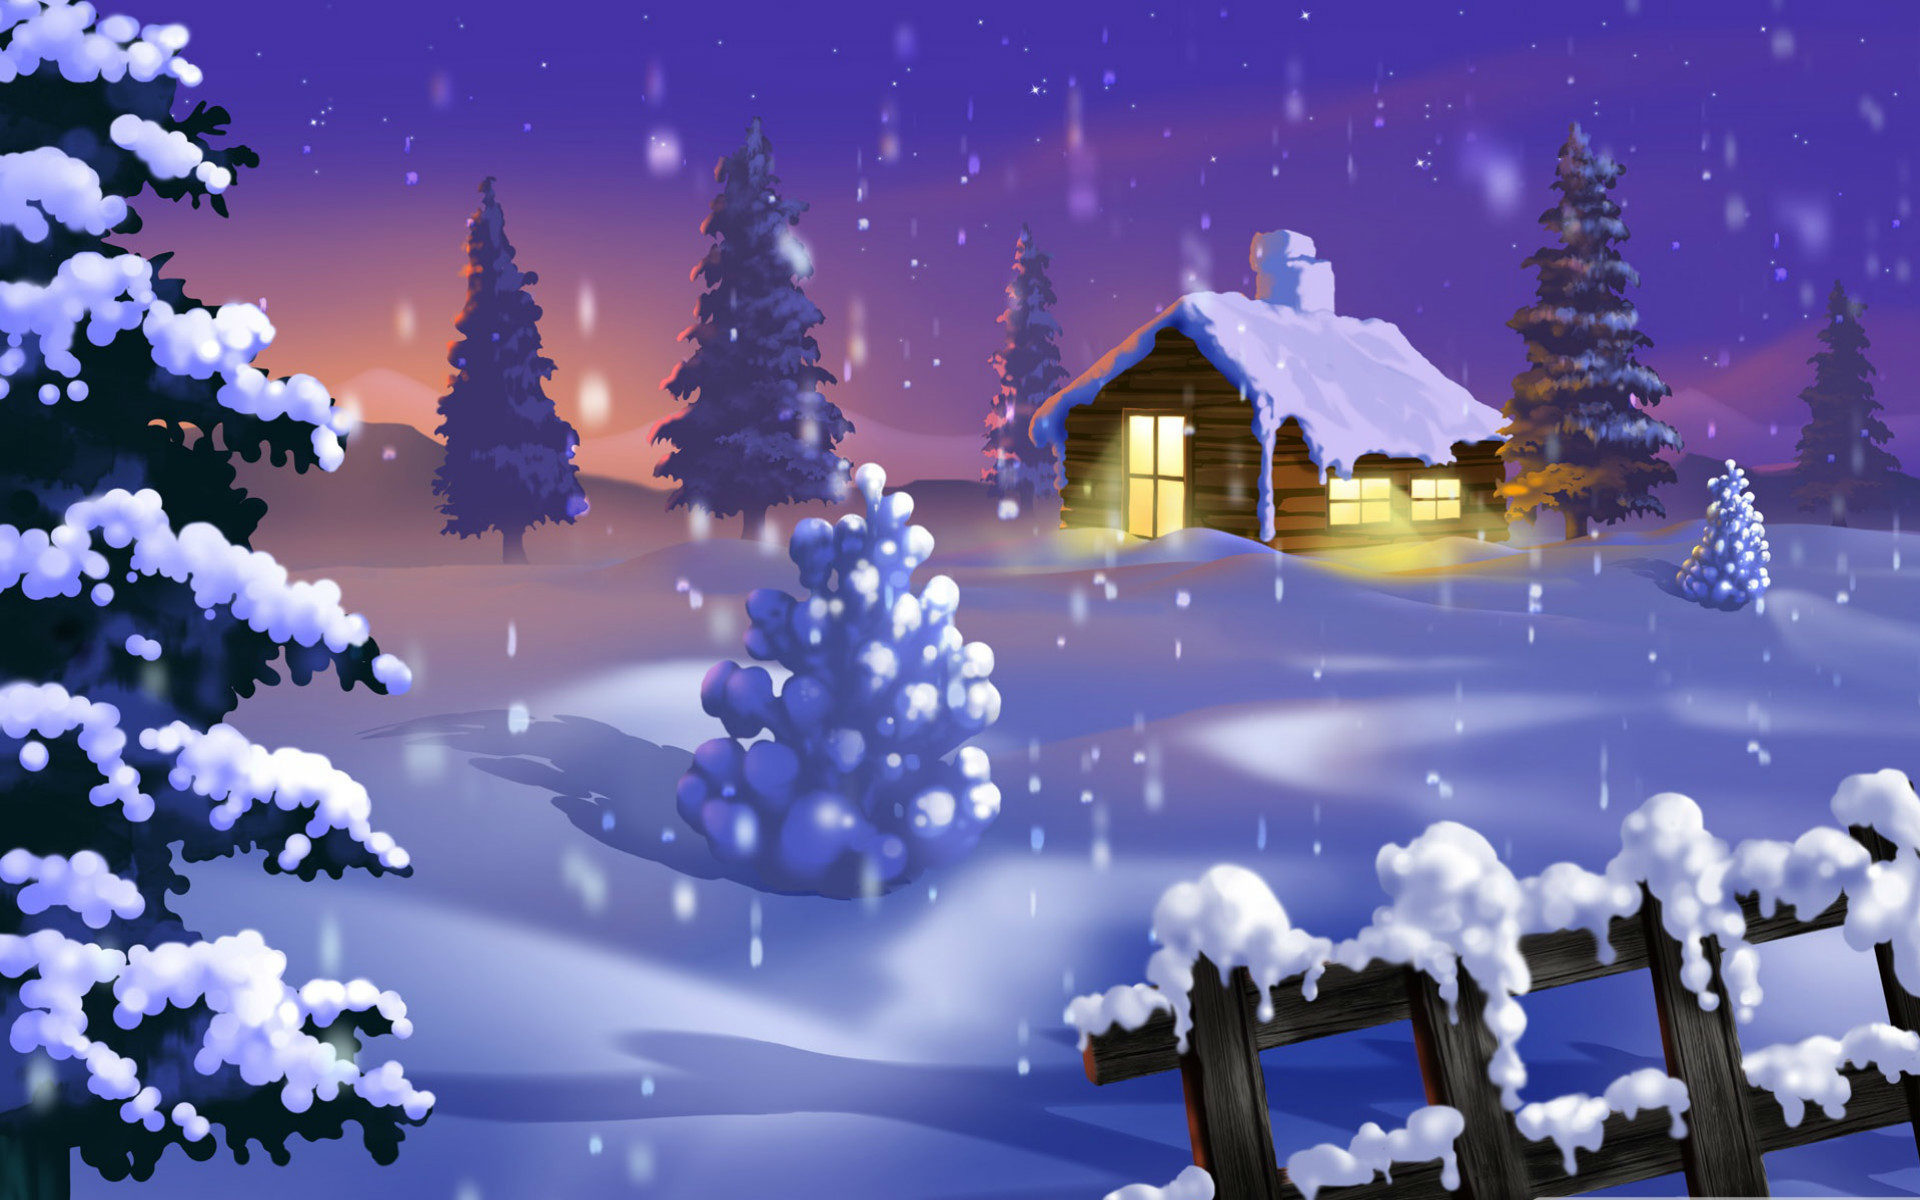 2560x1440 cozy christmas scenes wallpaper main